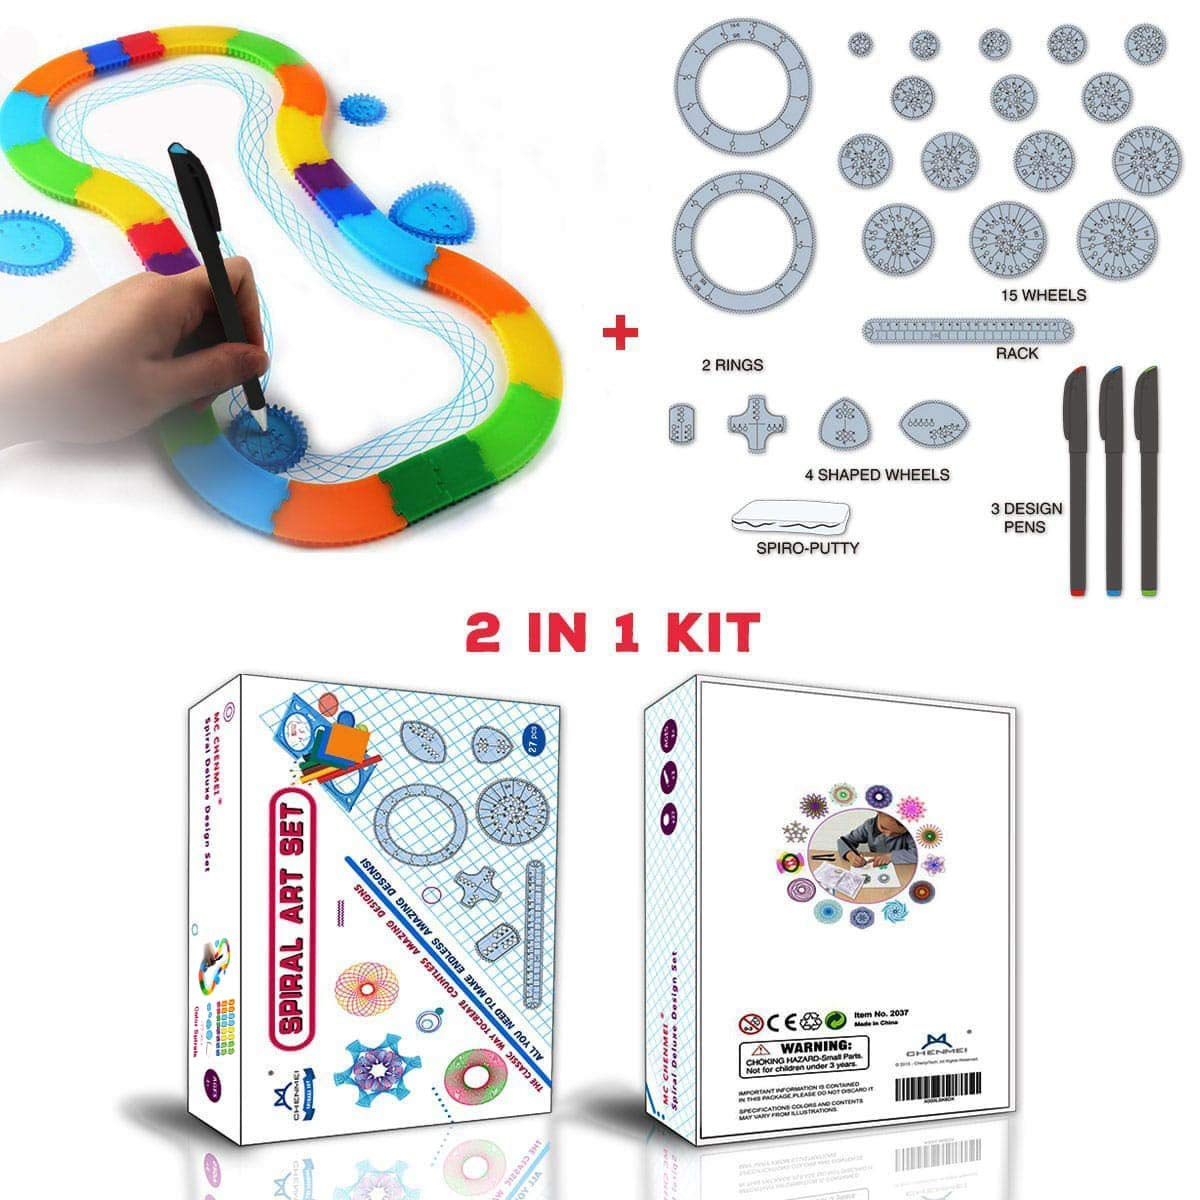 MC CHENMEI 2 IN 1 Spirograph Deluxe Set 2 Typ Classic Spiral Design Drawing Set für Kinder B07FVL6D6F | Smart